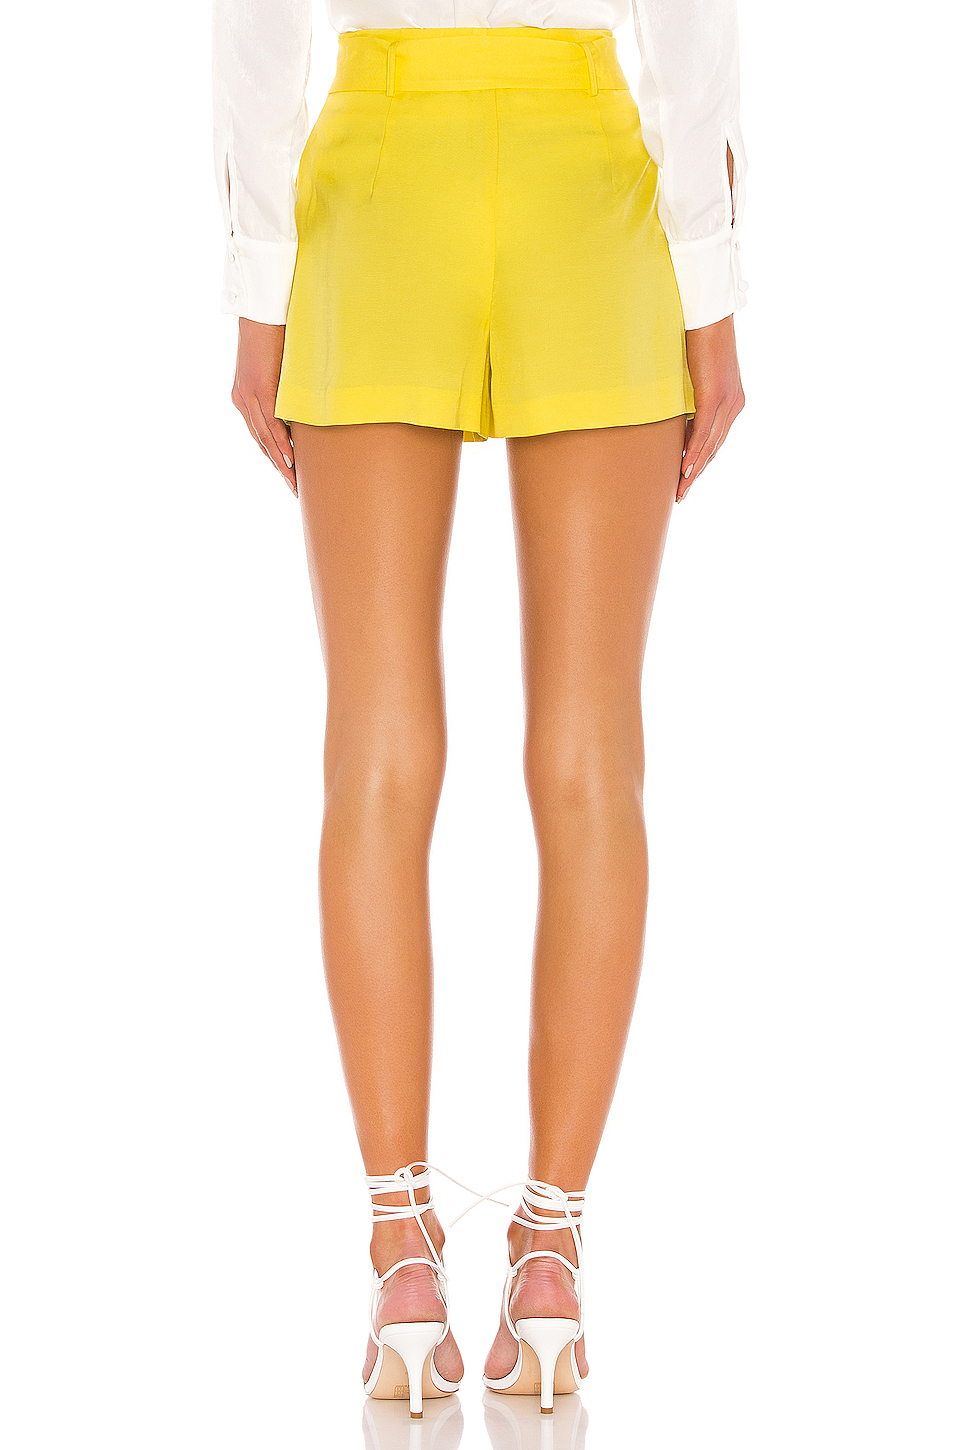 L'Academie The Laurent Short